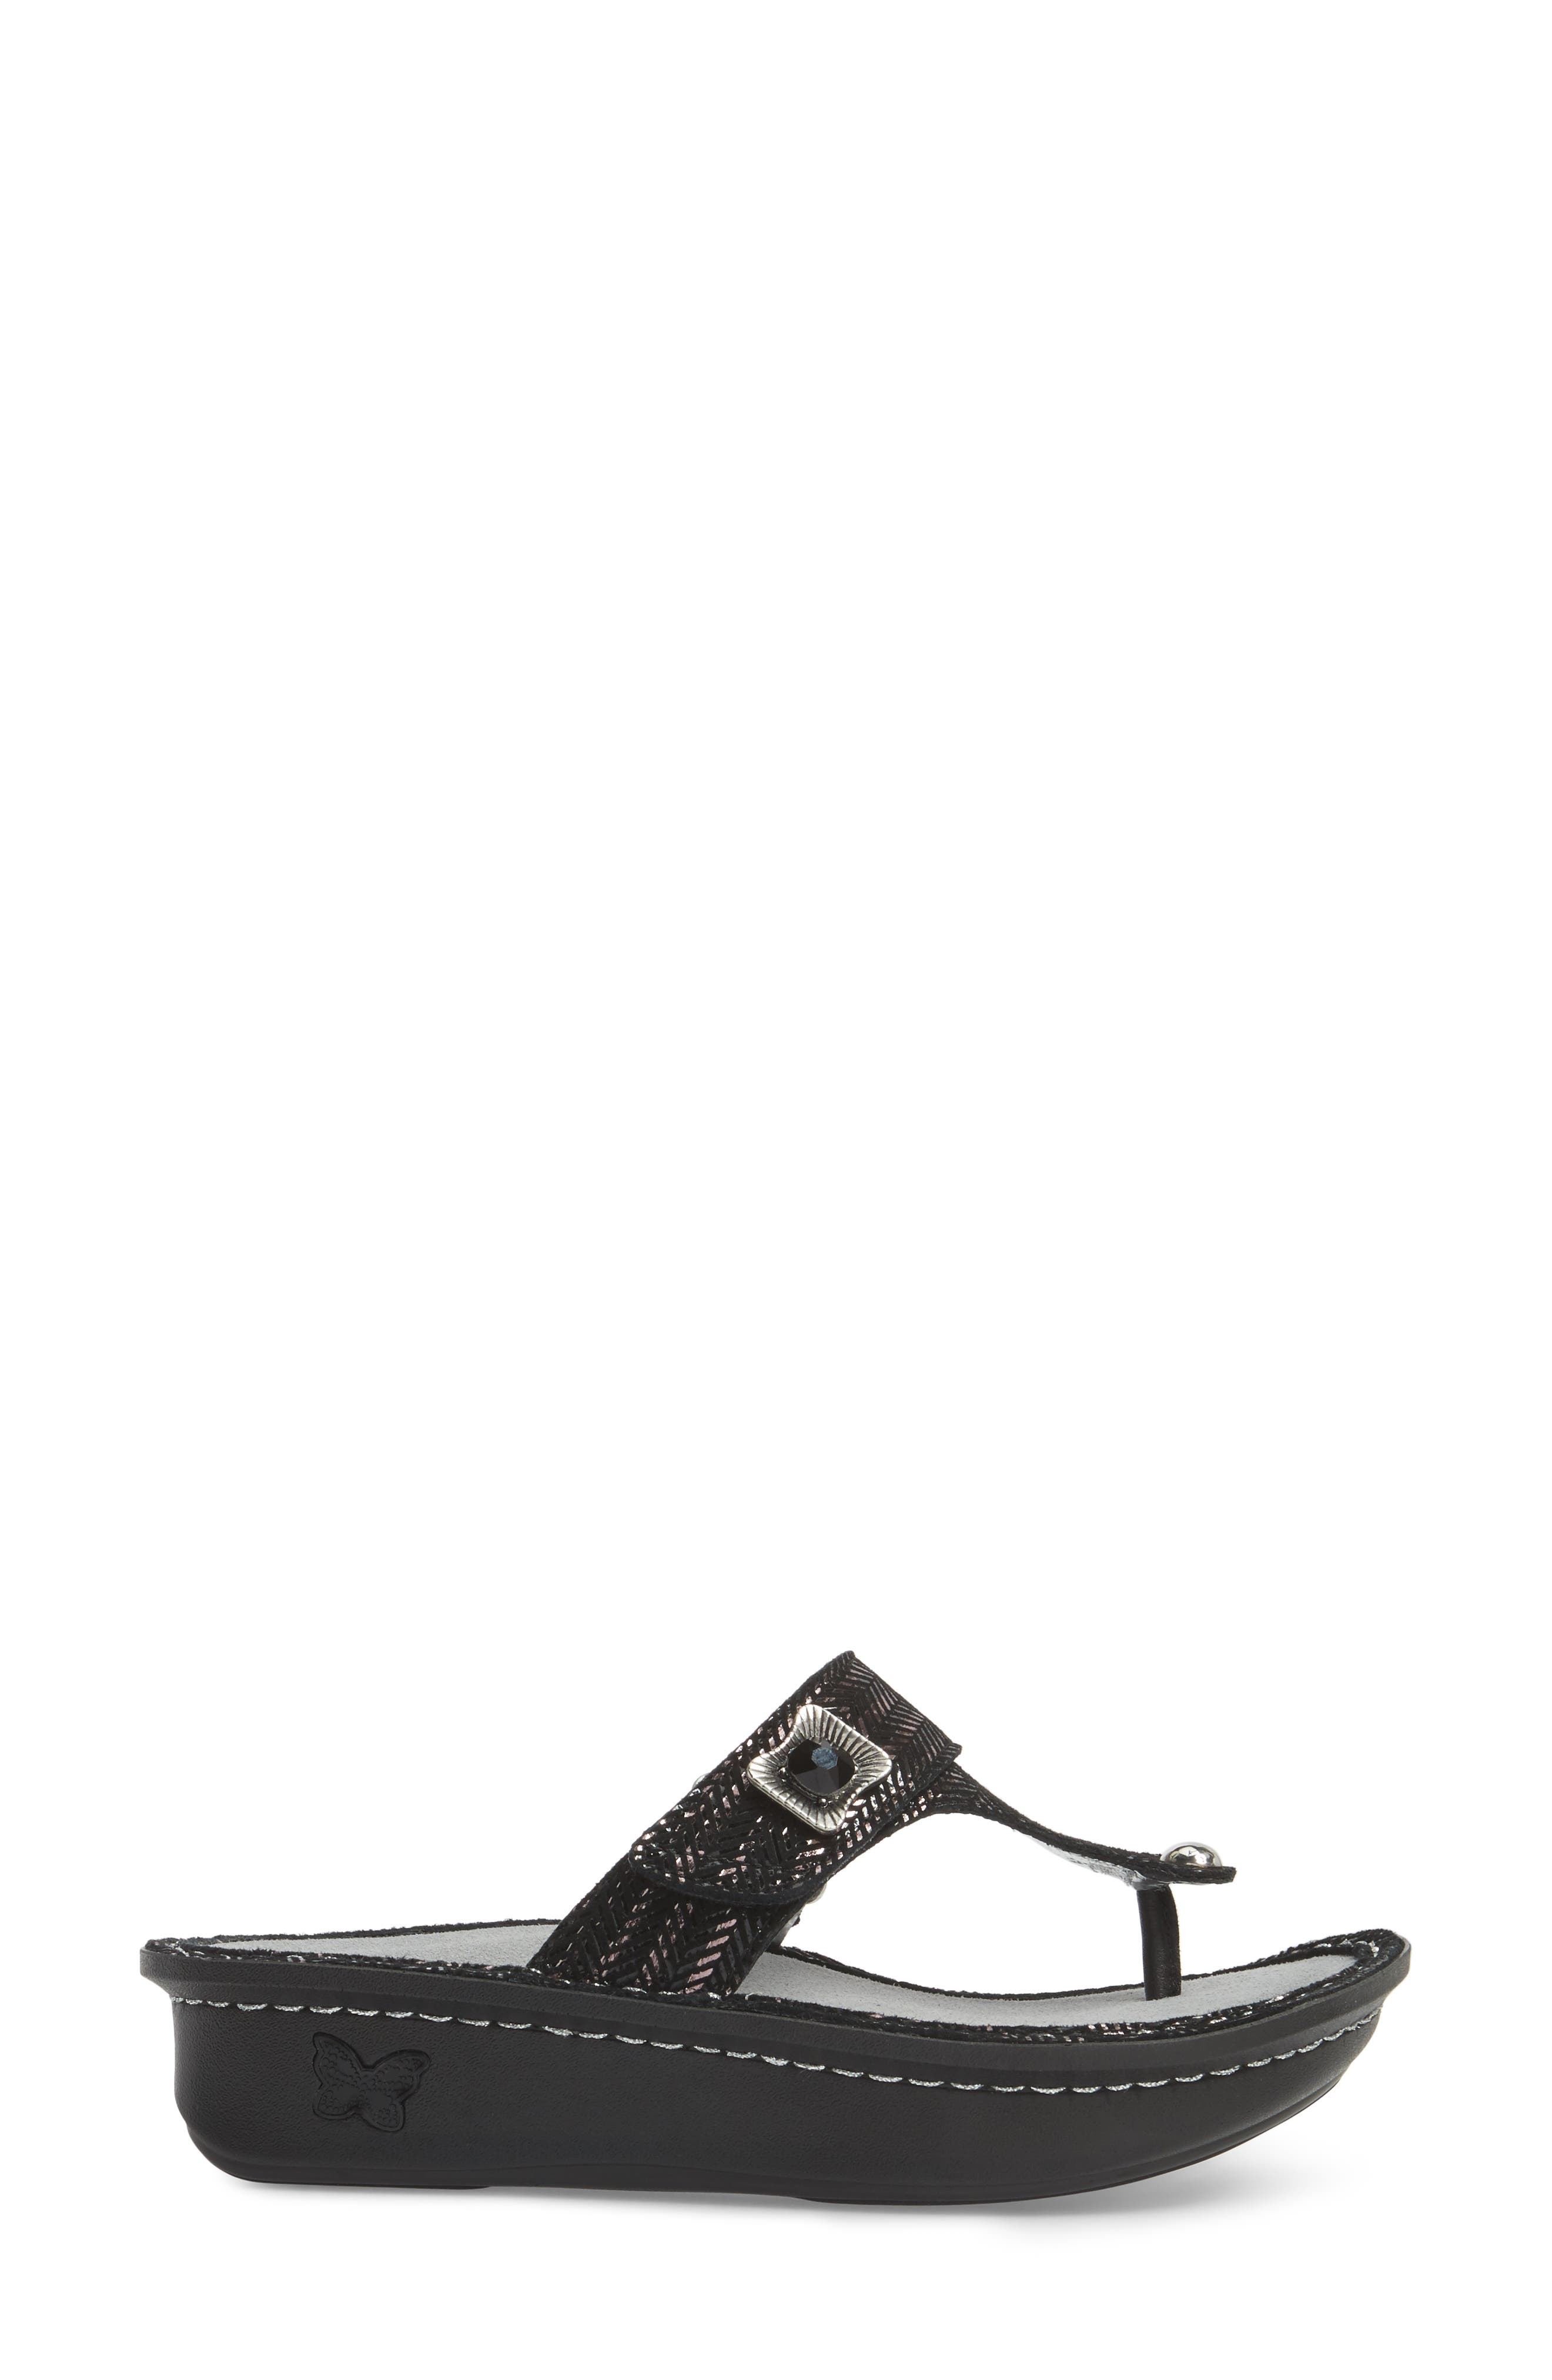 'Carina' Sandal,                             Alternate thumbnail 3, color,                             CHAINED BLACK LEATHER